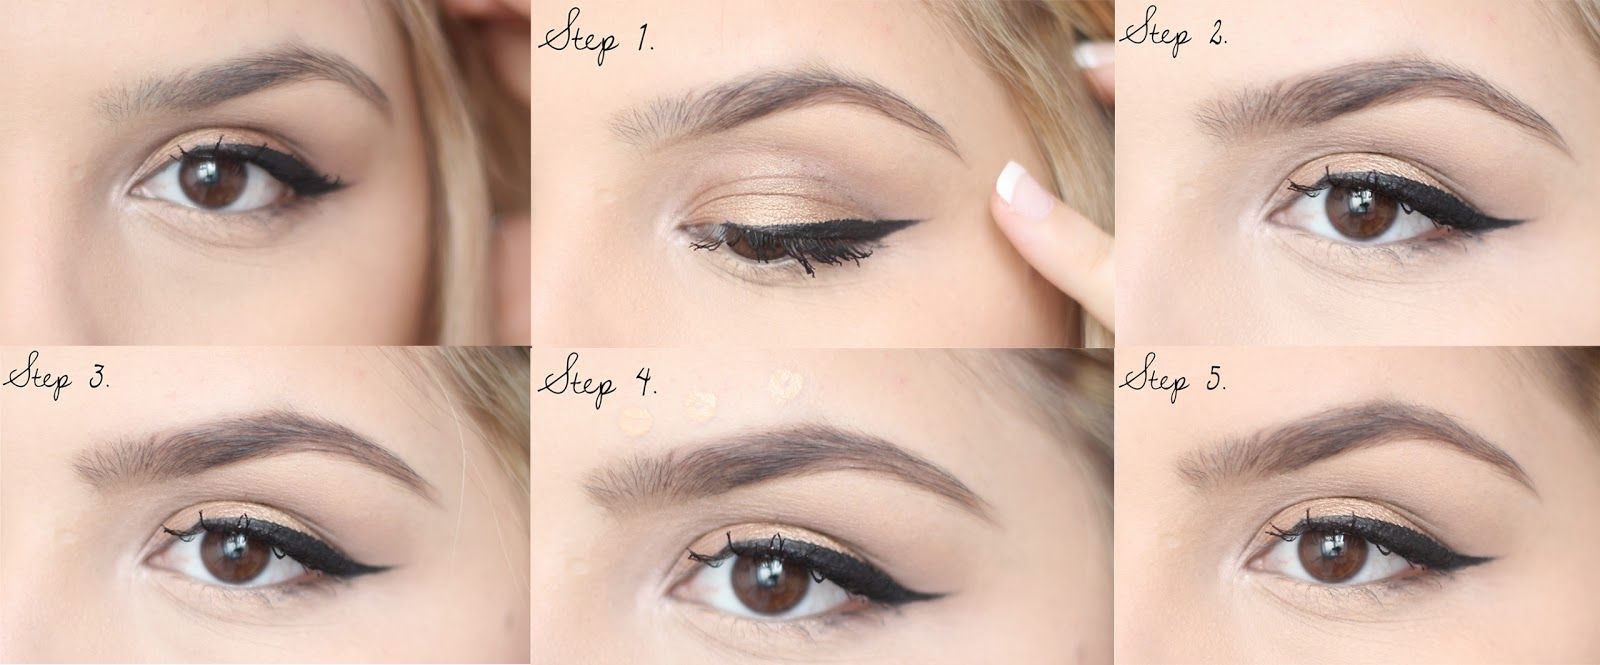 New Step By Drawing Eyebrows On Eyebrow Draw My 1 An I How